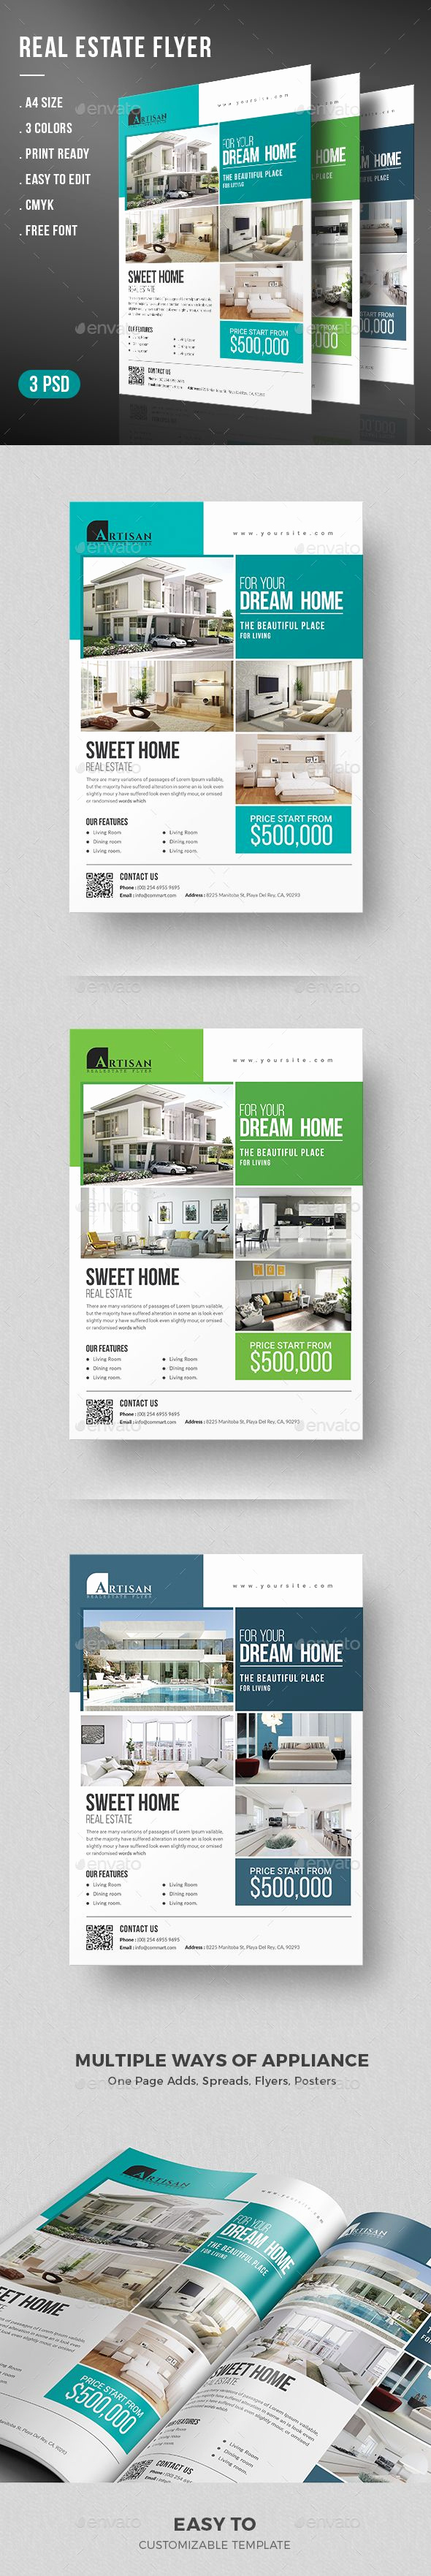 Real Estate Flyer Ideas Inspirational 25 Best Ideas About Real Estate Flyers On Pinterest